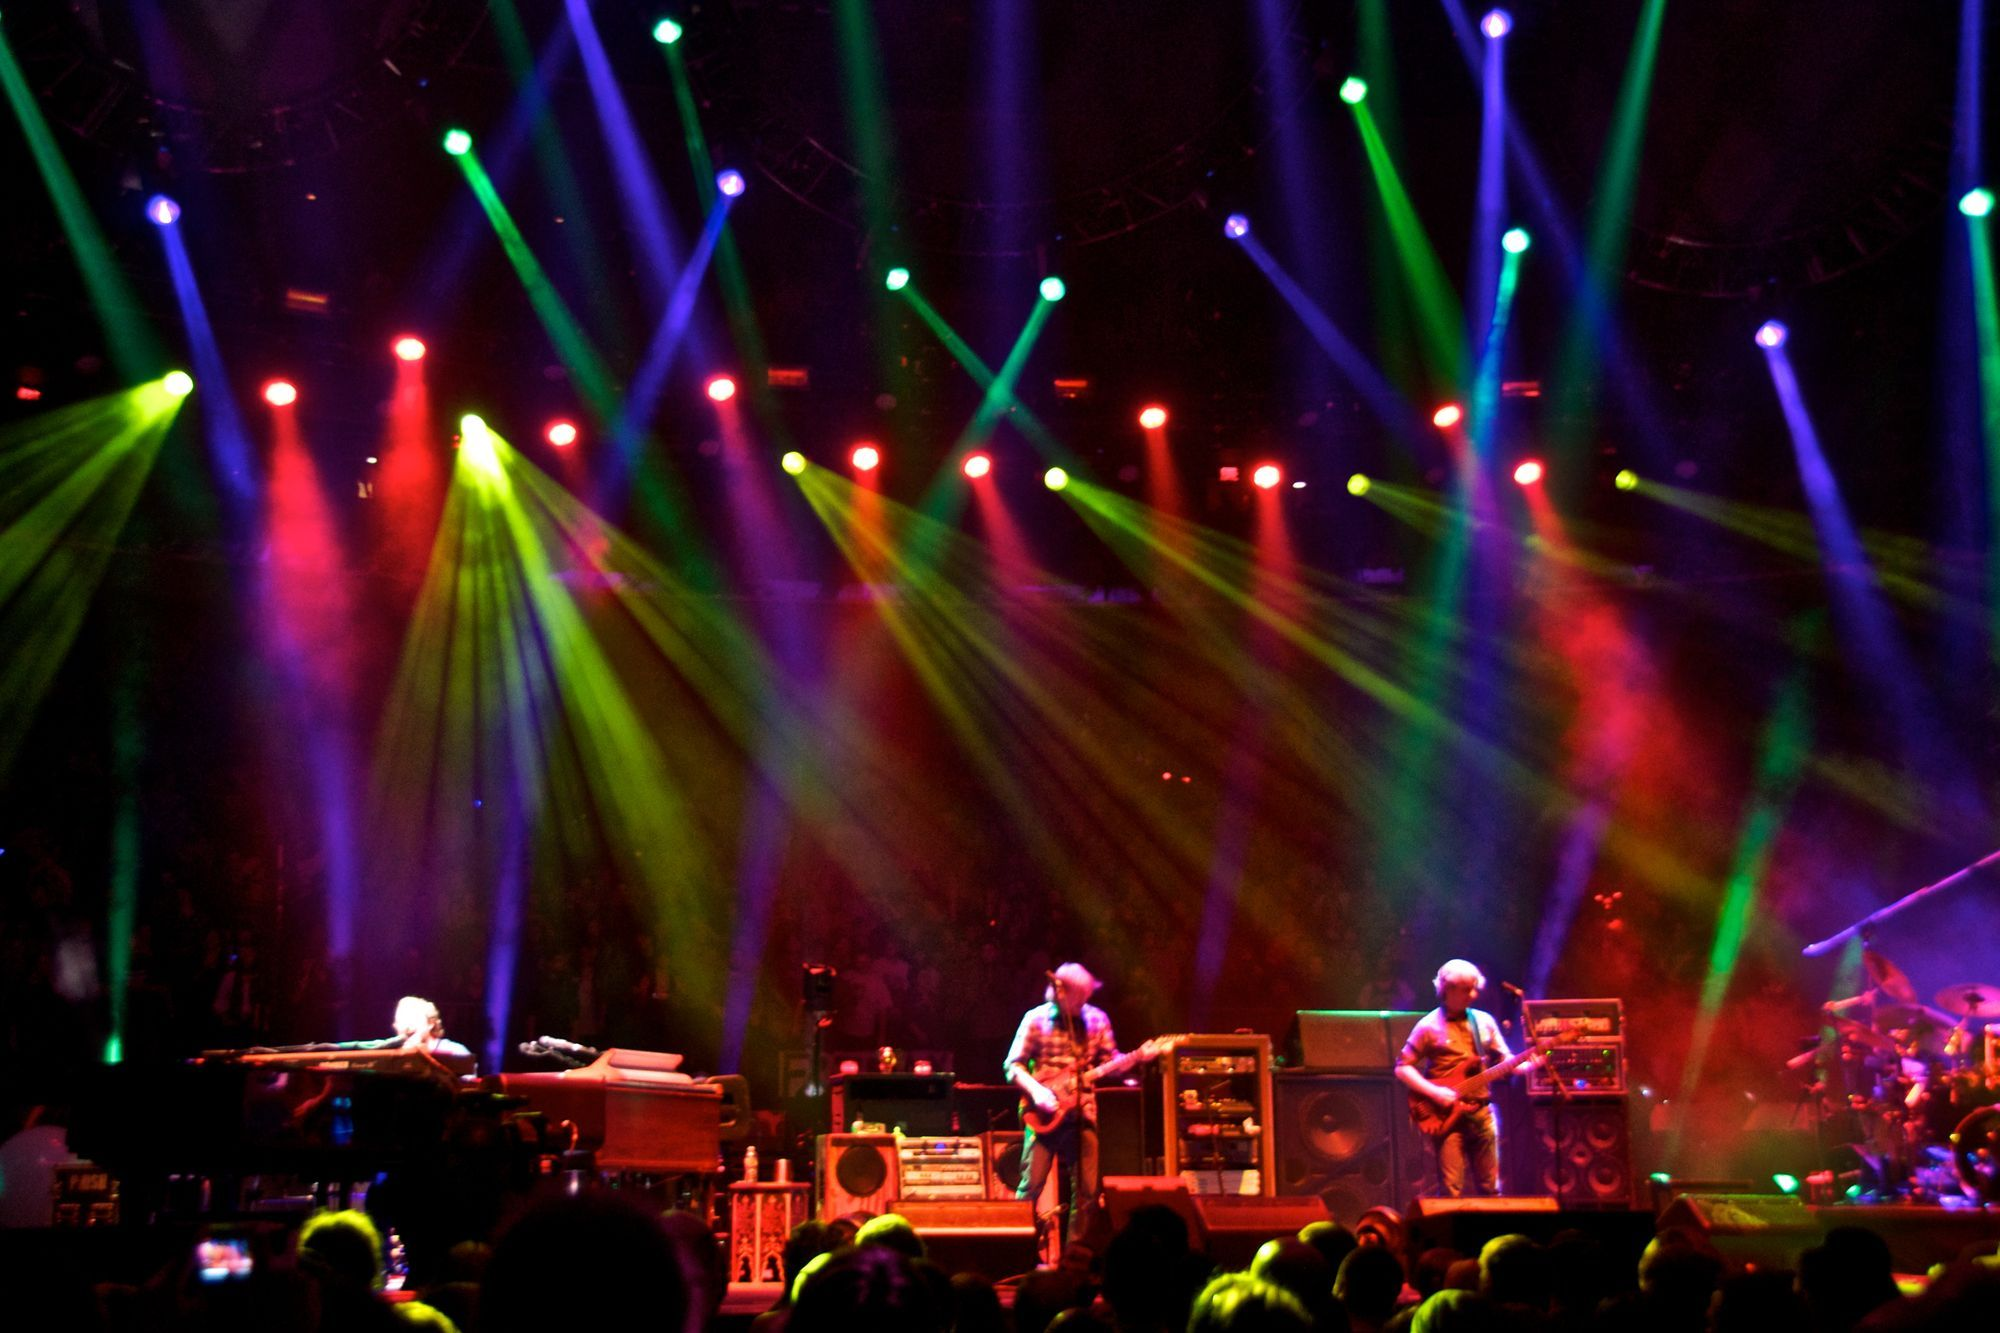 Phish at MSG